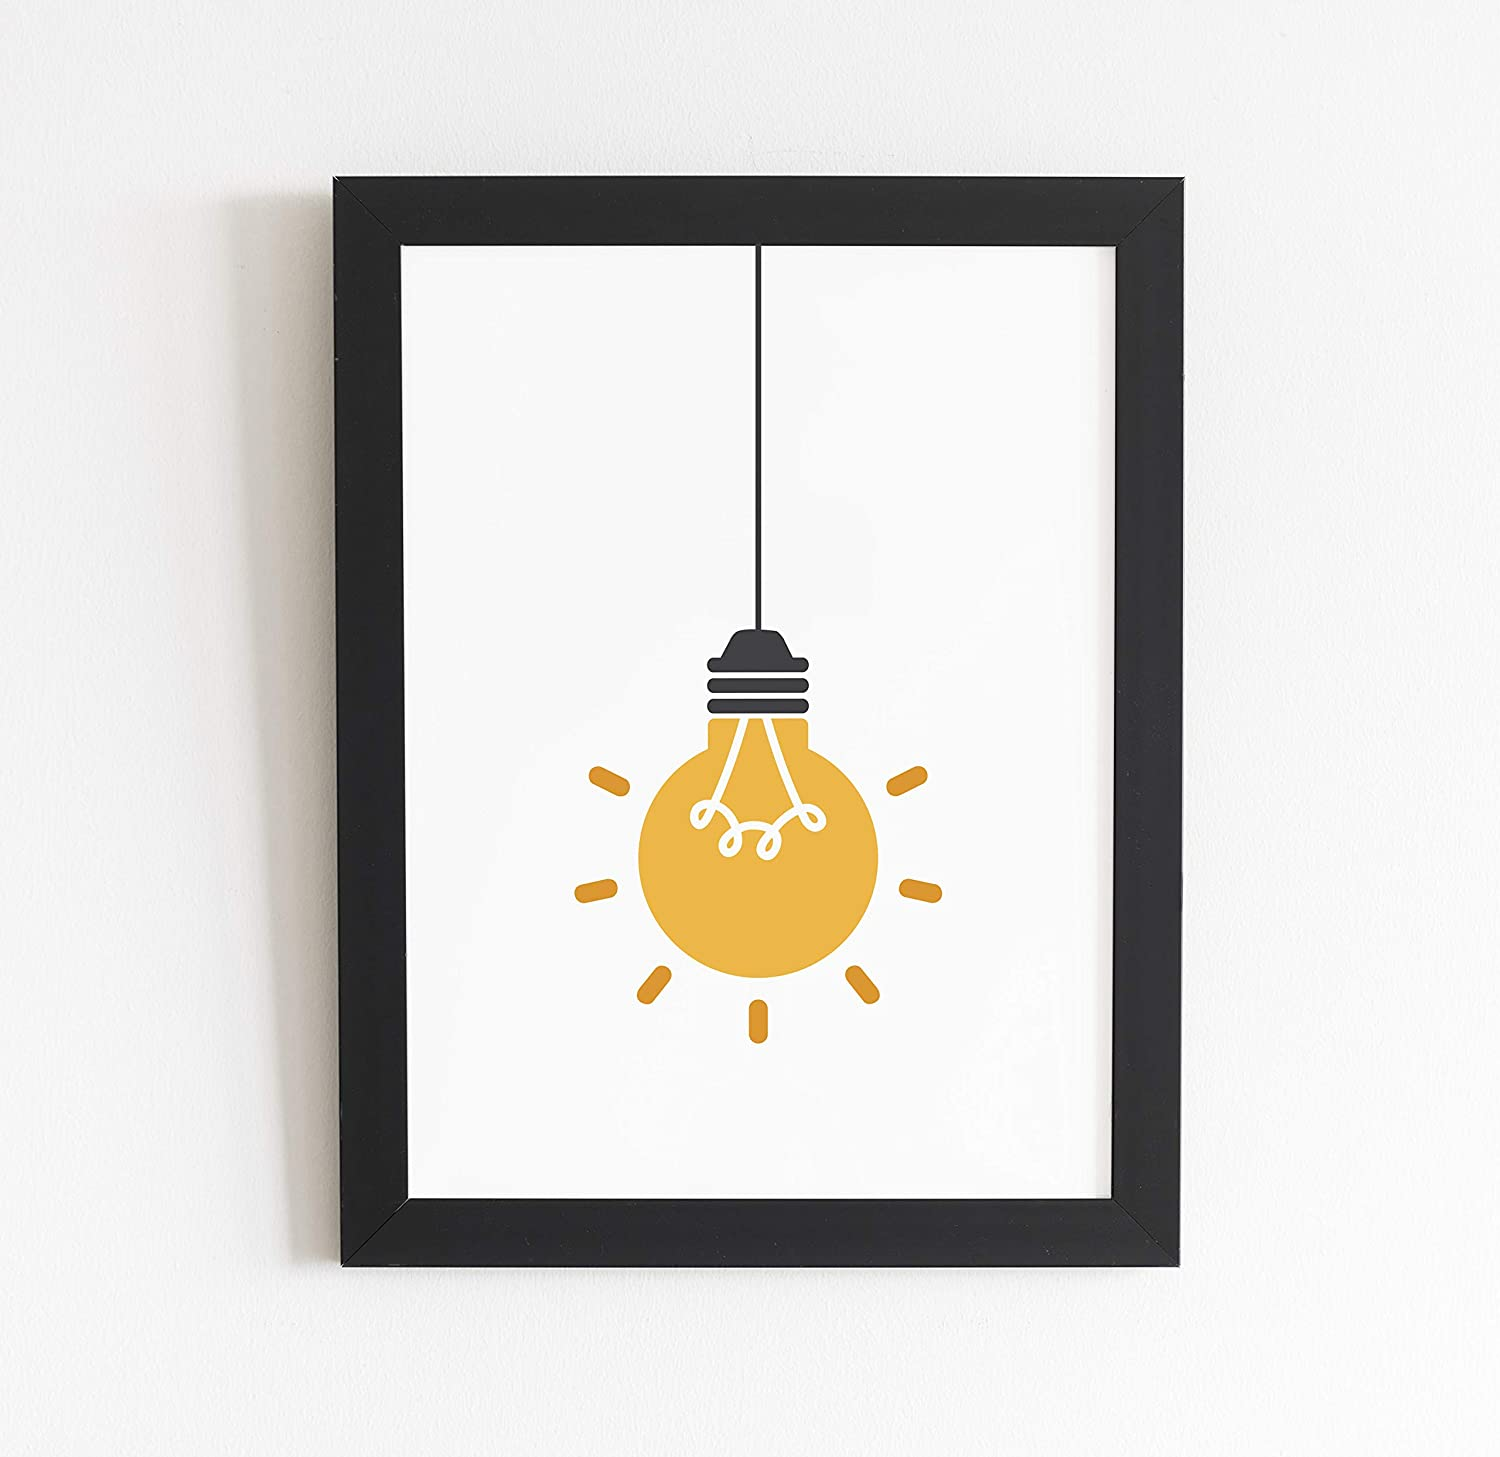 Office Wall Art Decor - Inspirational Light Bulb Wall Print Art | Home Office Decor | Gift Idea for Electrical Engineers, Electricians and Scientists | Modern Wall Poster | 8.5 X 11 Inch - Unframed